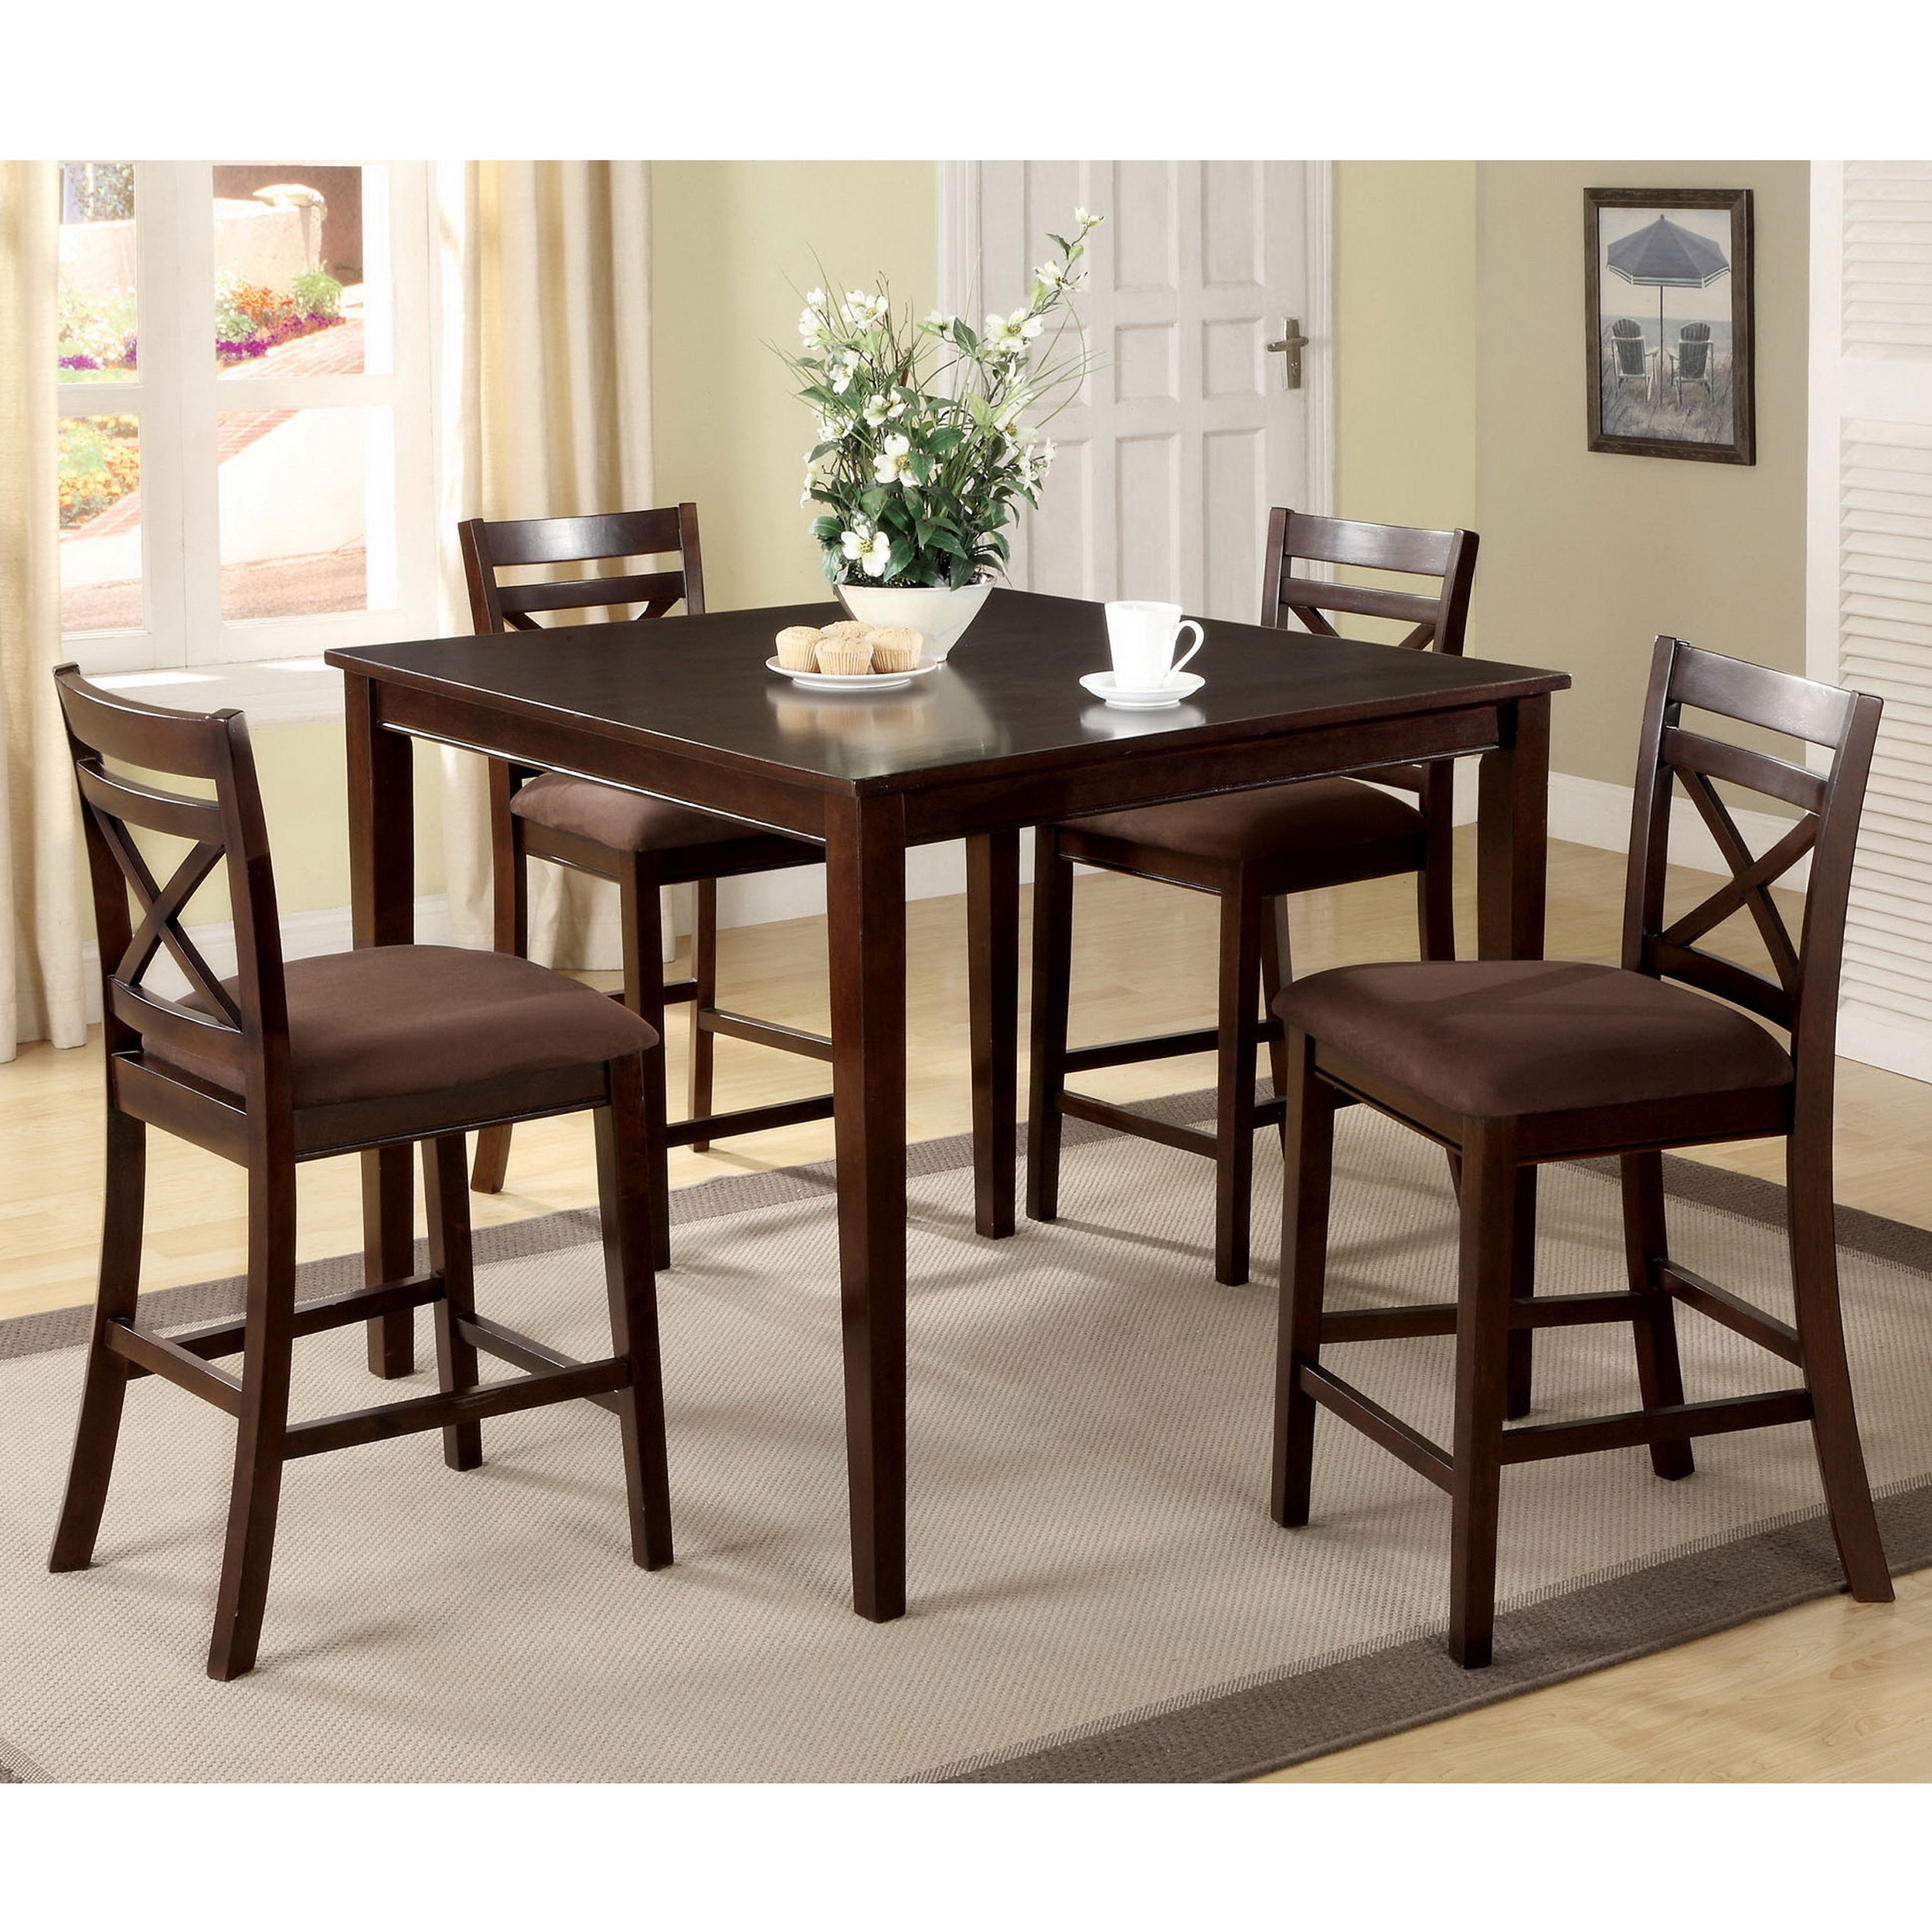 Latest Shop Copper Grove Catlerock 5 Piece Counter Height Dining Set – On With Regard To Bettencourt 3 Piece Counter Height Solid Wood Dining Sets (View 9 of 25)